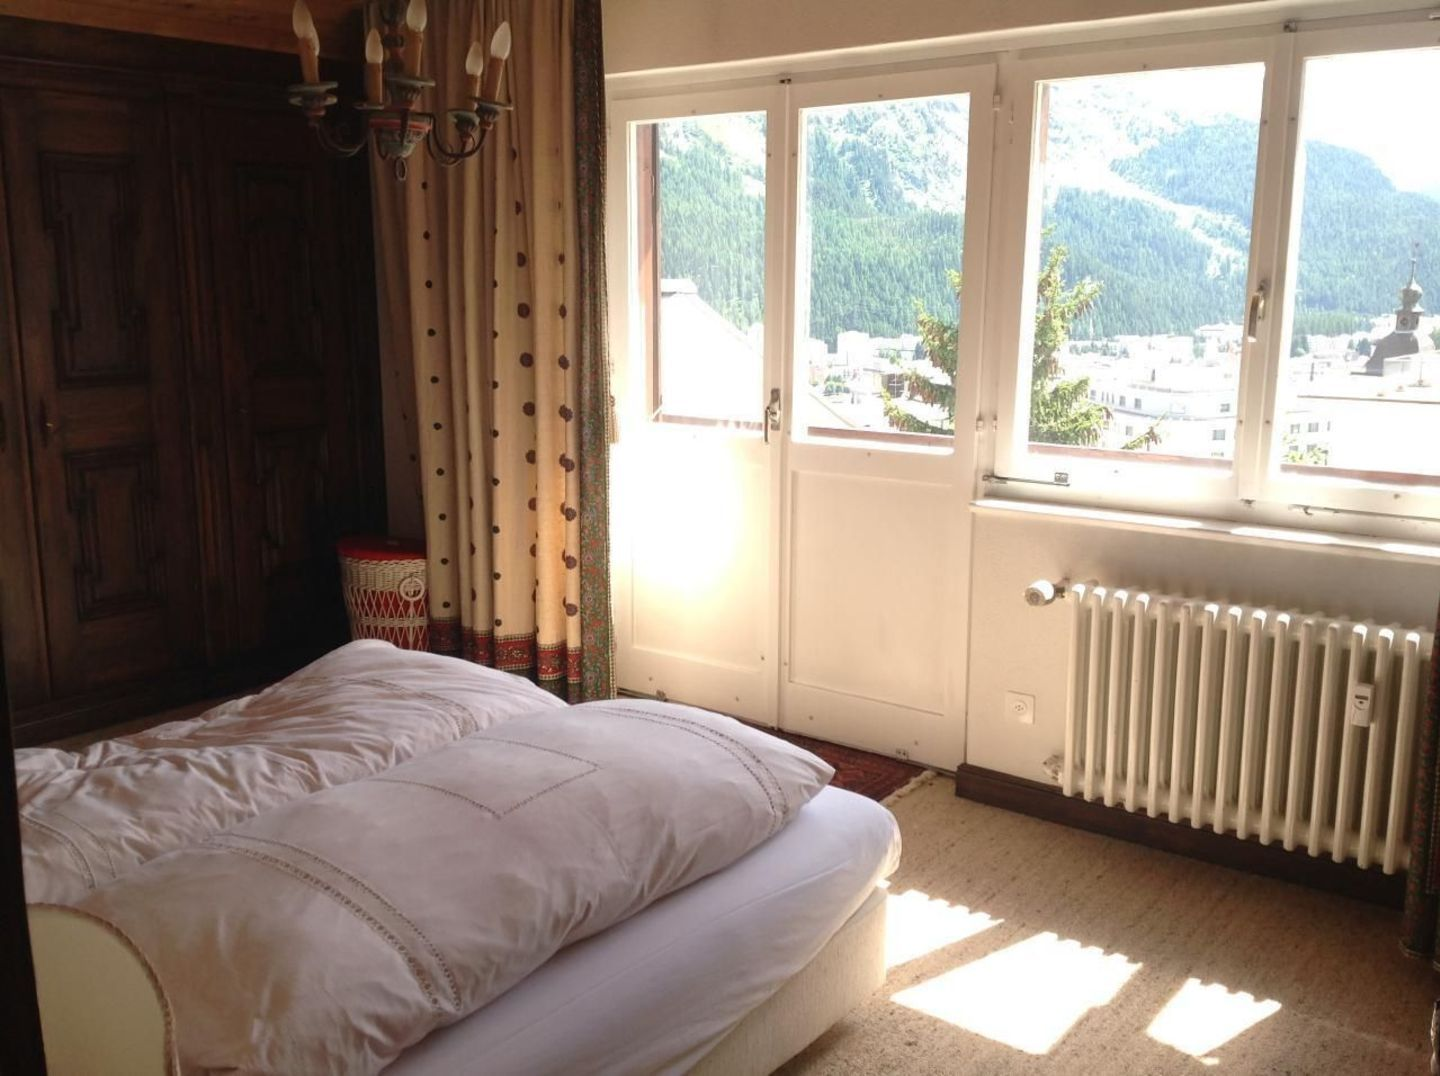 Apartment 100 metres from the heart of St. Moritz